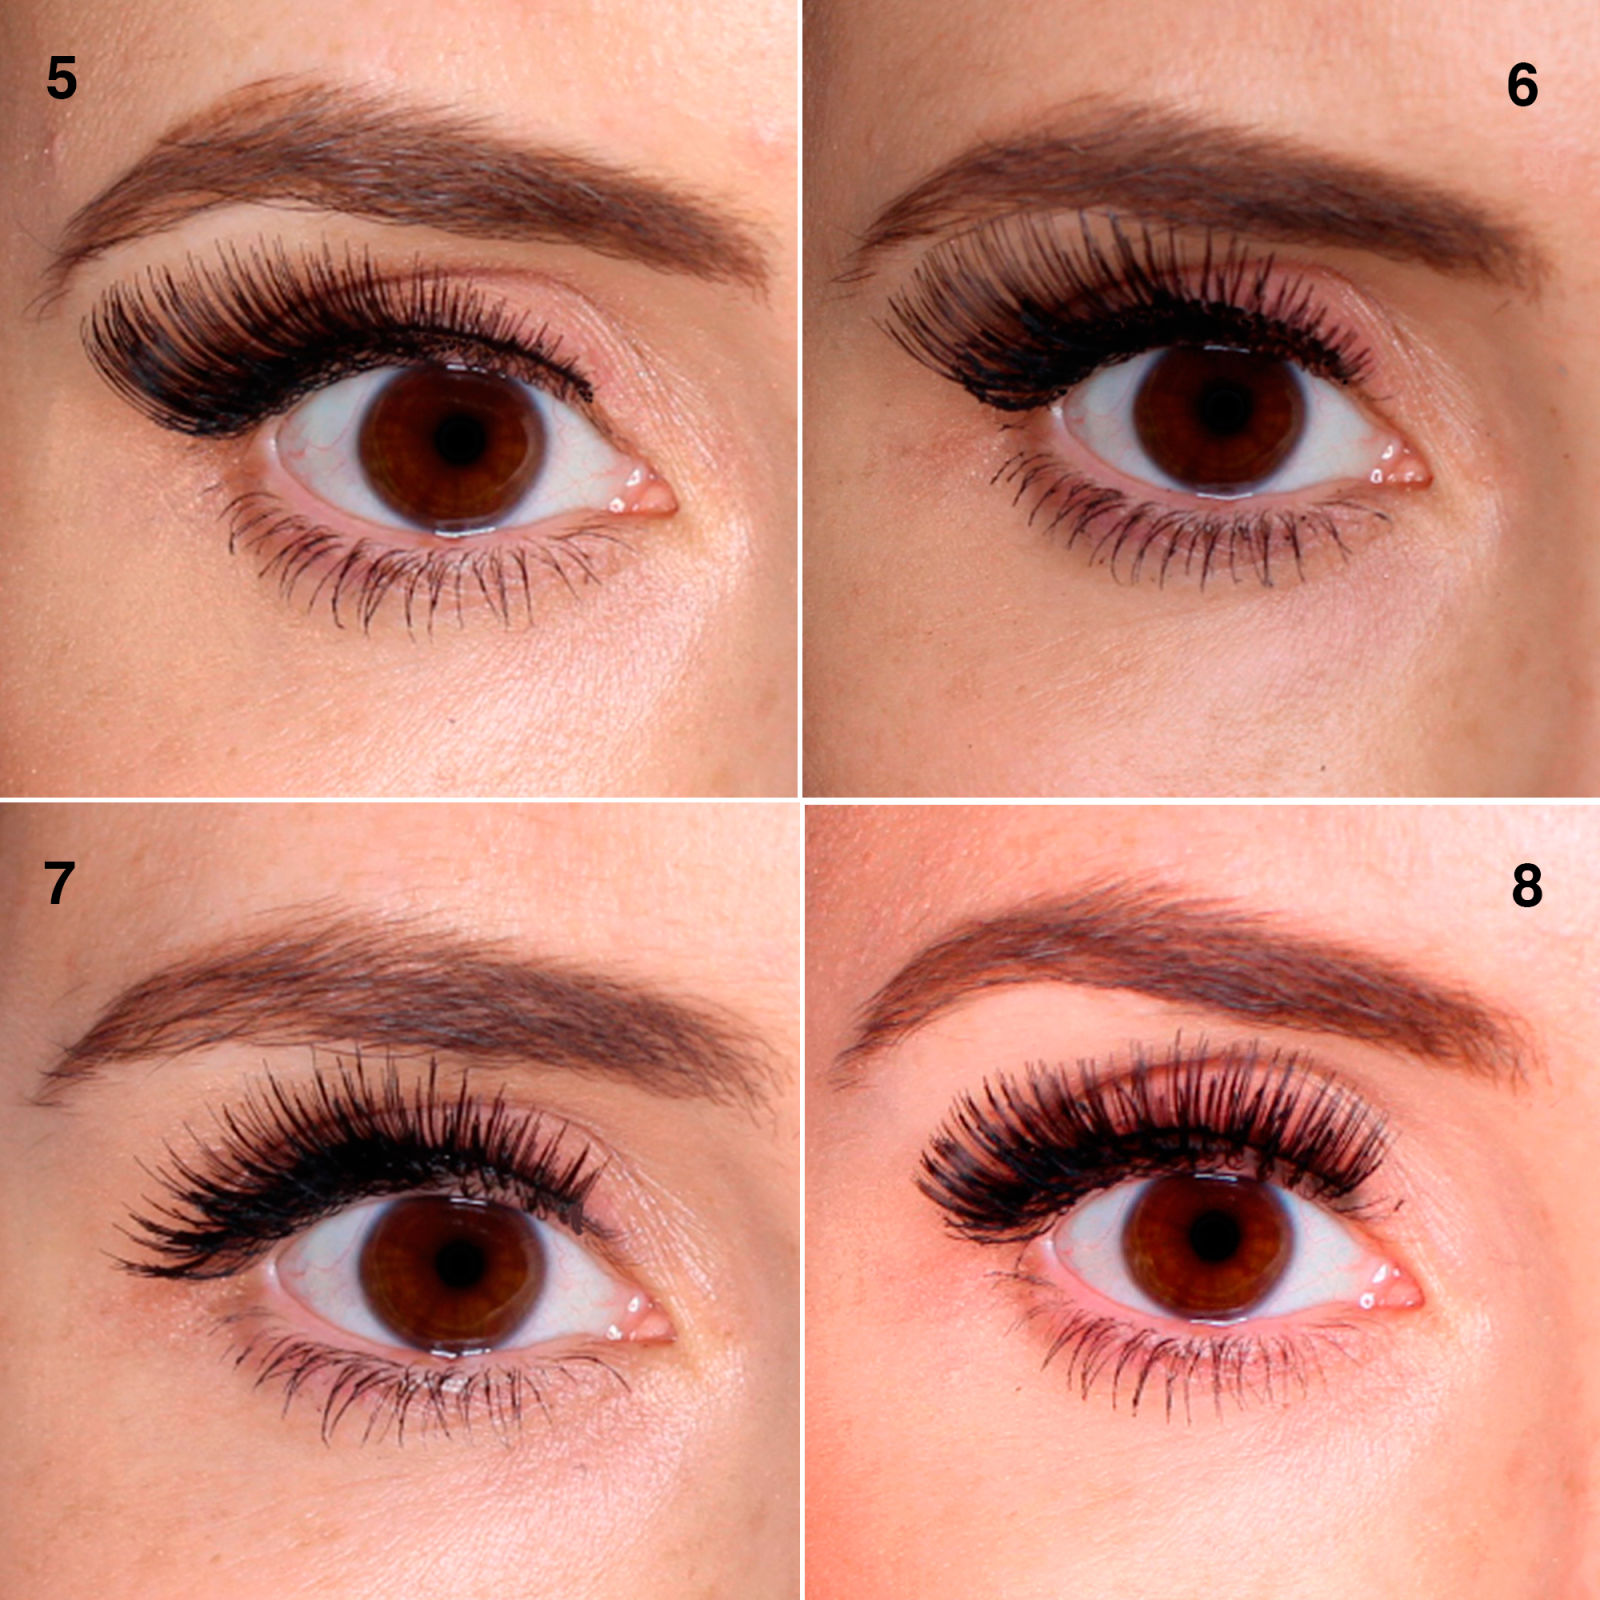 1449243638-syn-cos-1449071320-100-lashes-image2